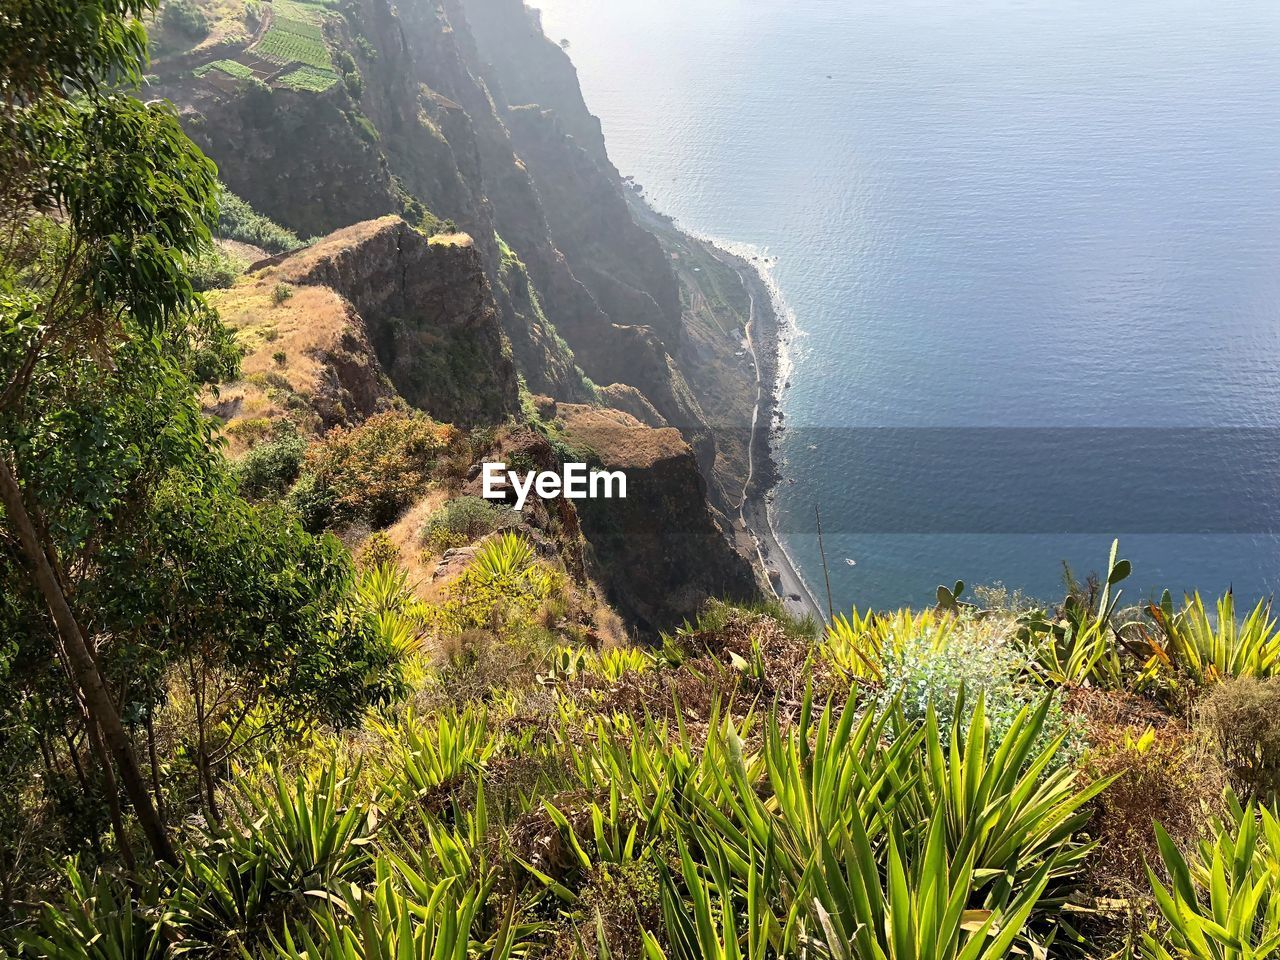 water, plant, beauty in nature, sea, scenics - nature, tranquil scene, tranquility, nature, growth, land, high angle view, cliff, day, no people, mountain, outdoors, idyllic, non-urban scene, grass